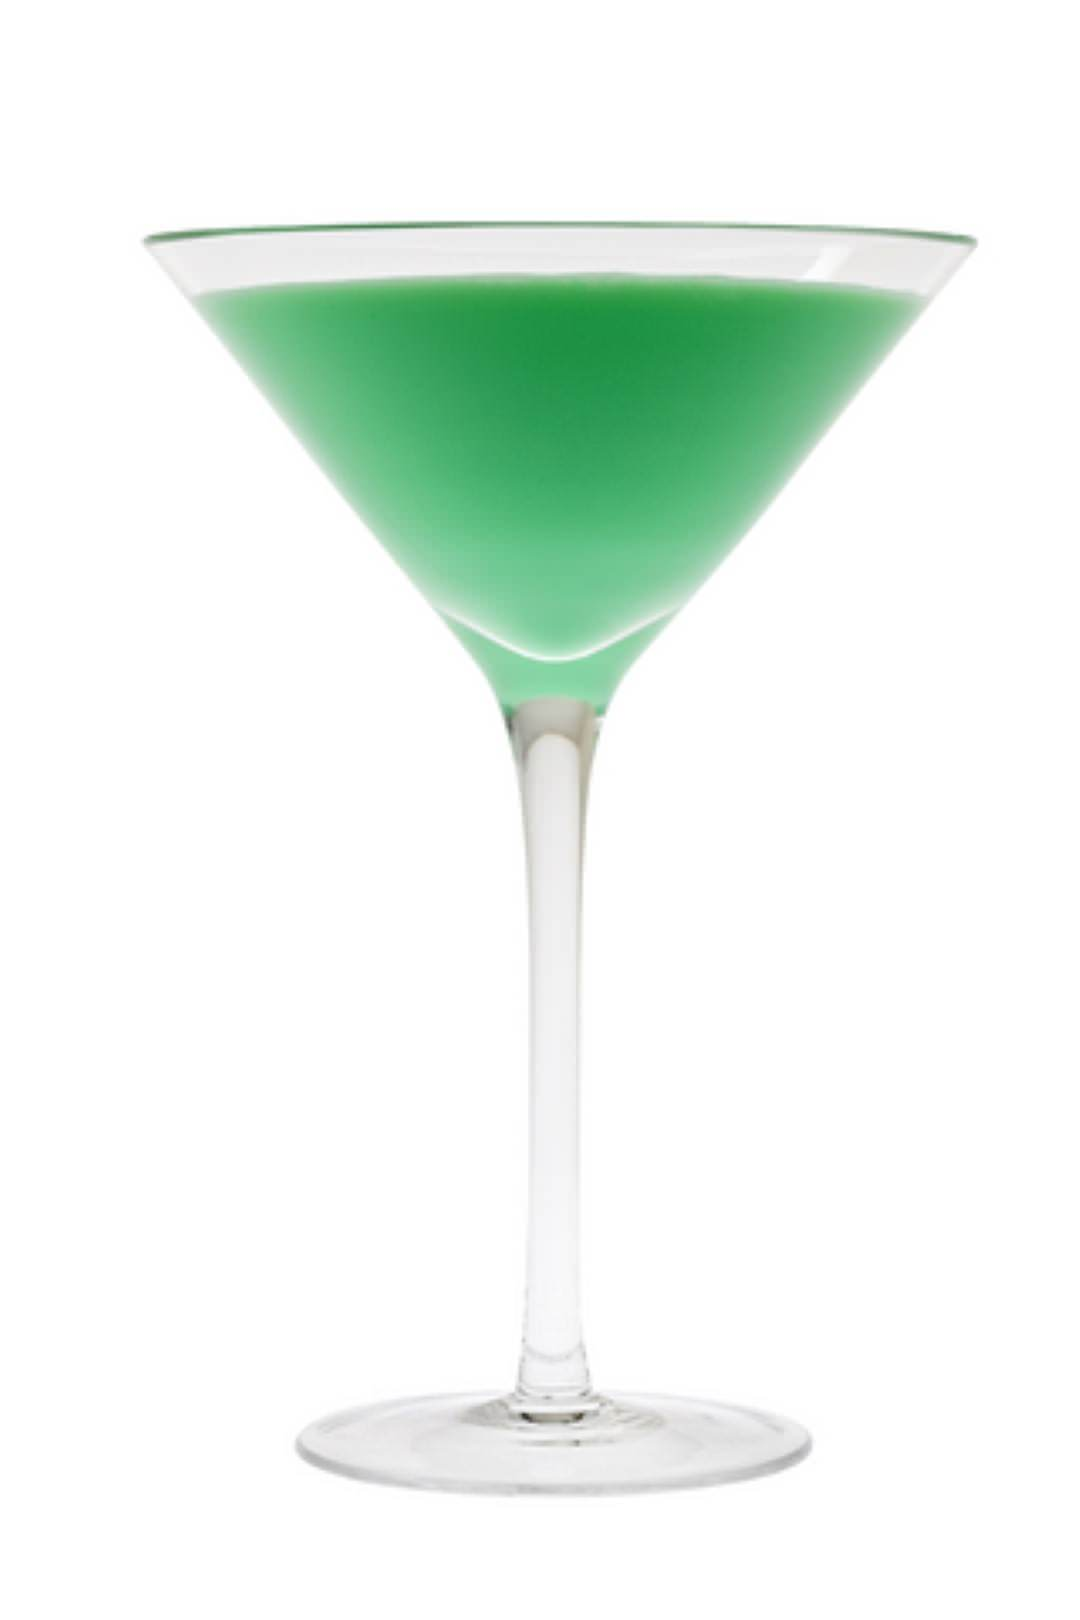 Grasshopper Cocktail Recipes Easy Cocktails